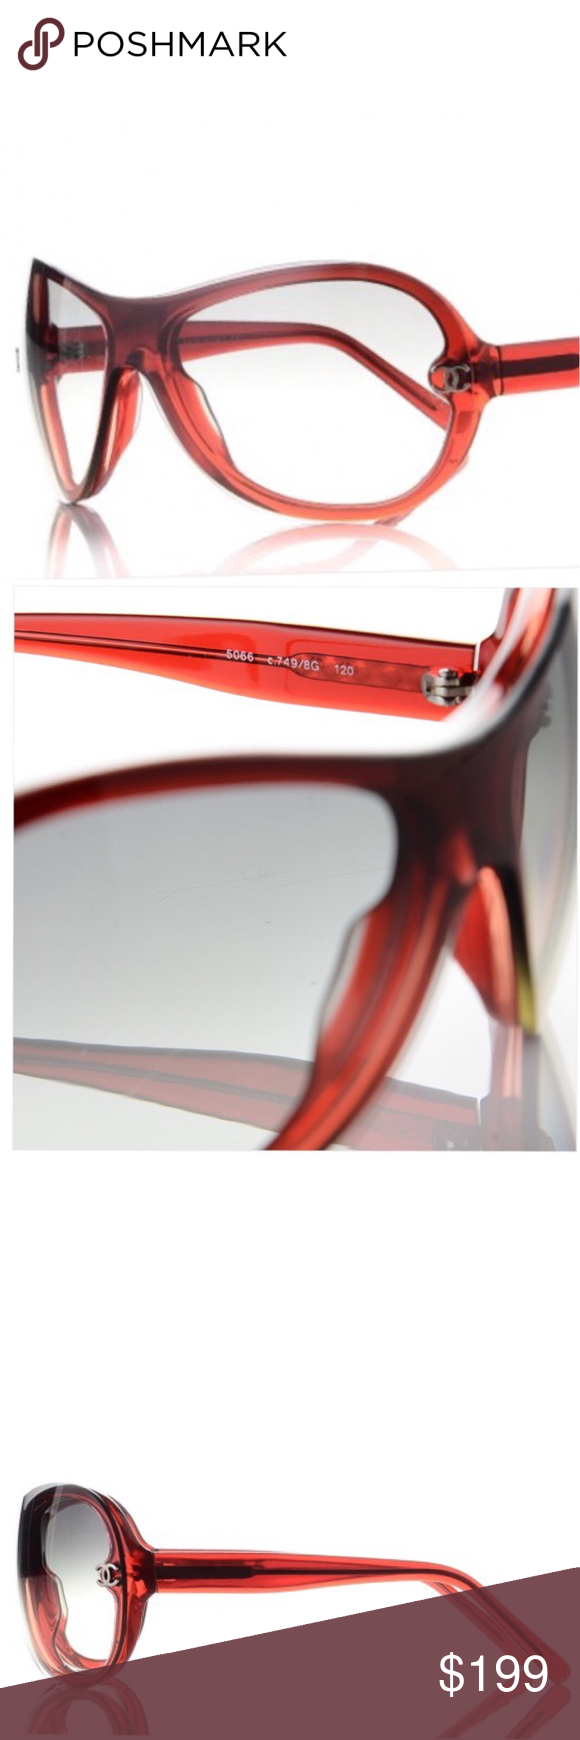 0be0711f5e317 Authentic CHANEL cc Logo. sunglasses RED♥ ♥ Approximate measurements Height  5.5